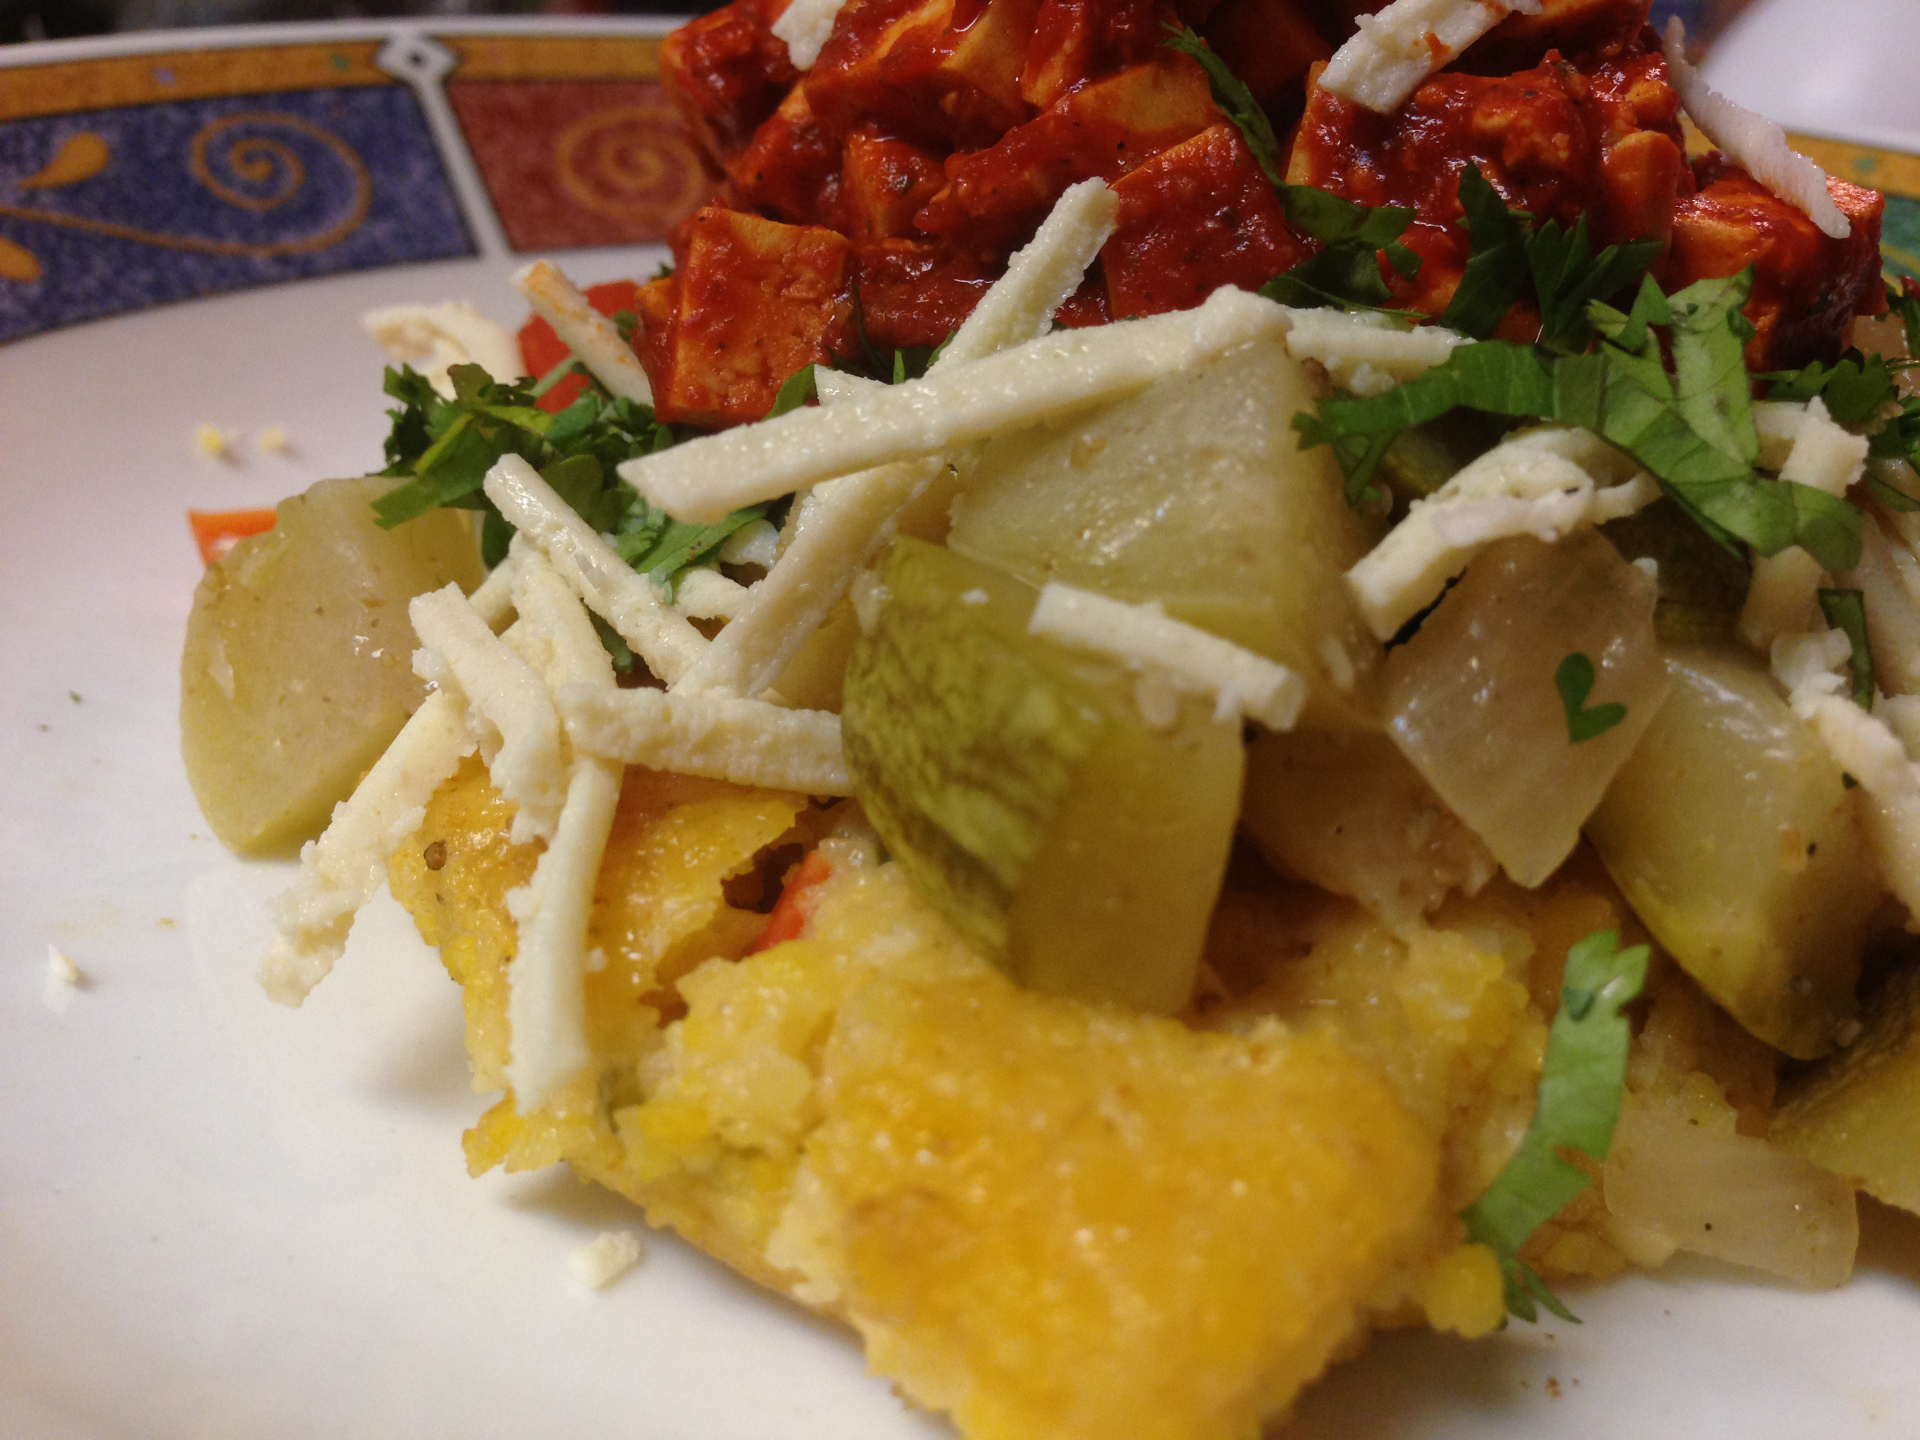 Polenta with Chili by Chef Johnna Gale